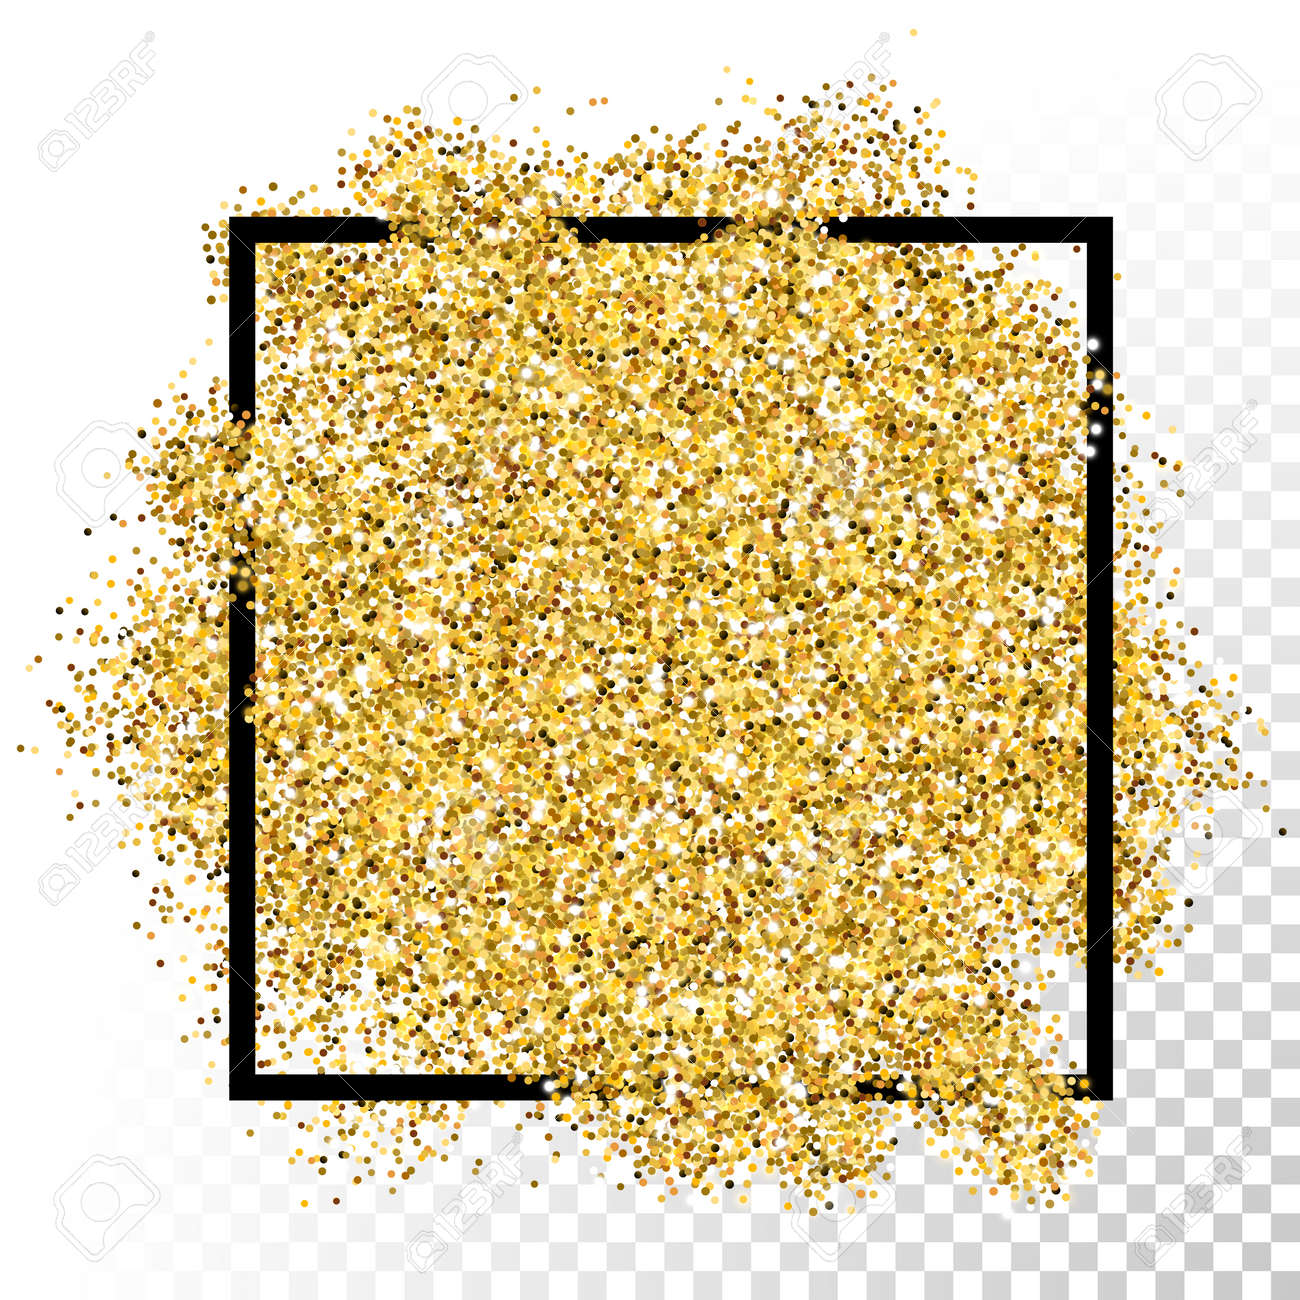 Gold glitter bright vector transparent background golden sparkles - Vector Gold Glitter Particles Texture In Frame On Transparent Background Stock Vector 49962725